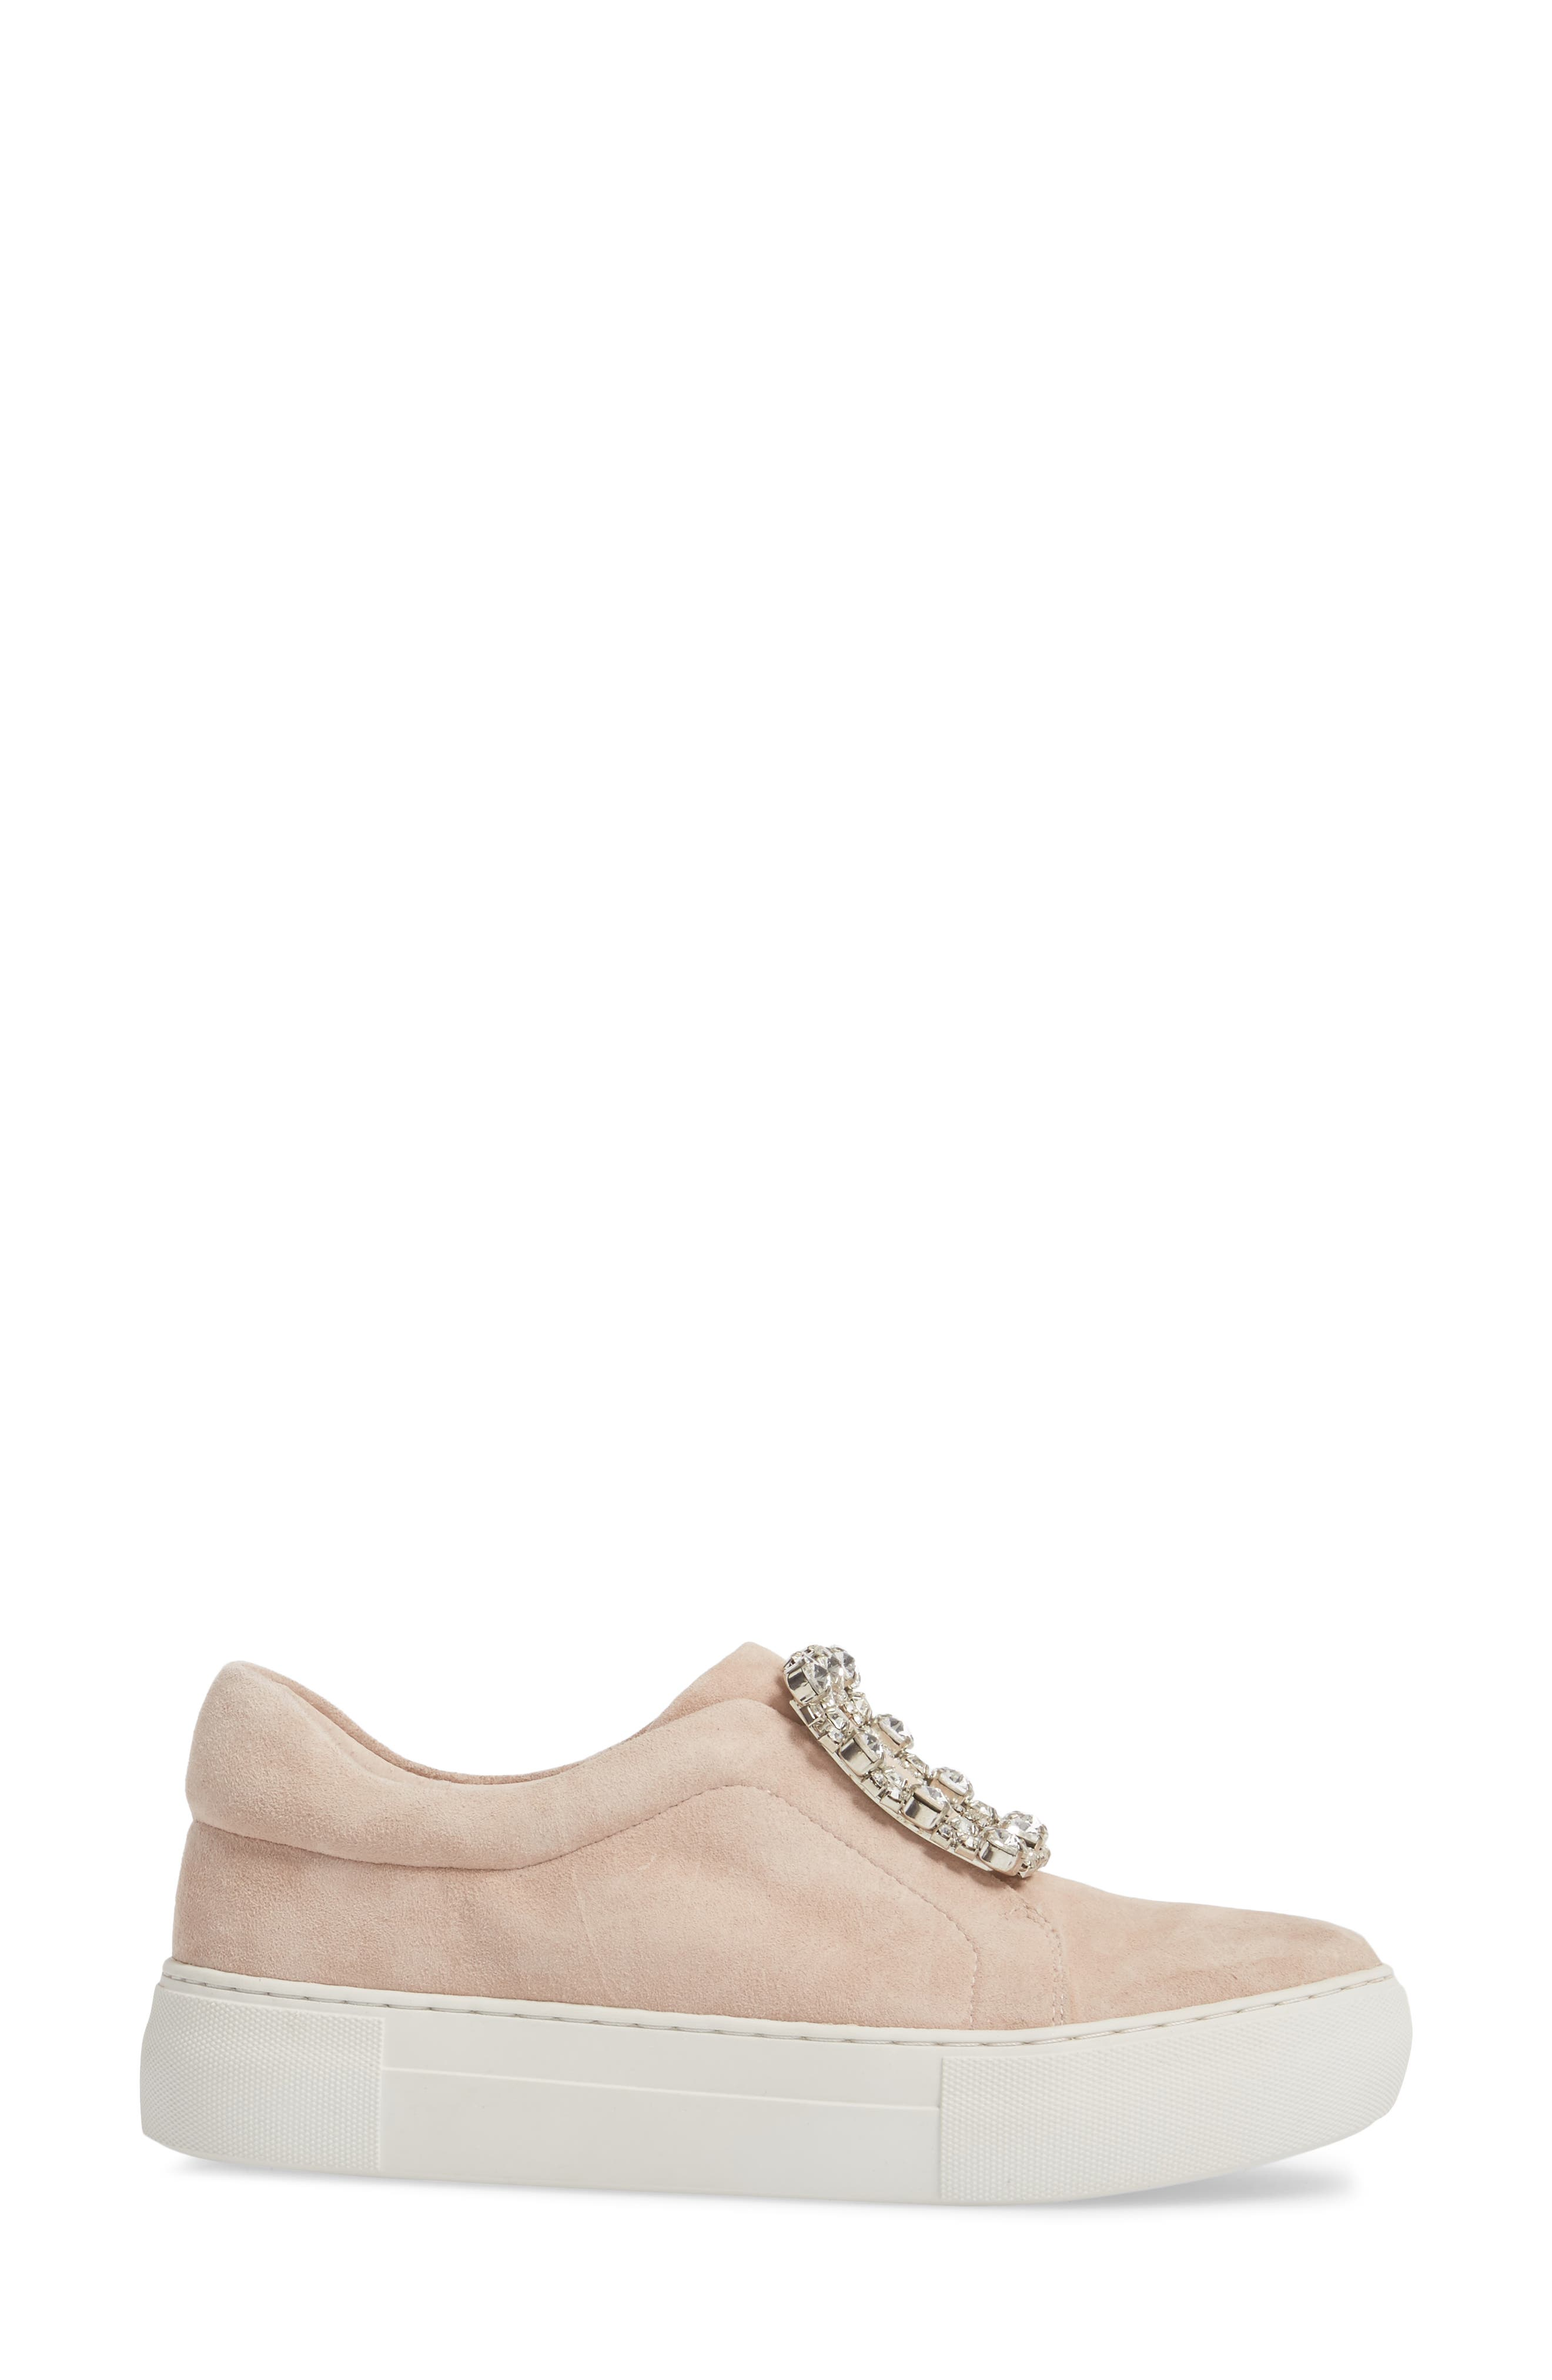 Abode Embellished Buckle Platform Sneaker,                             Alternate thumbnail 3, color,                             Nude Suede